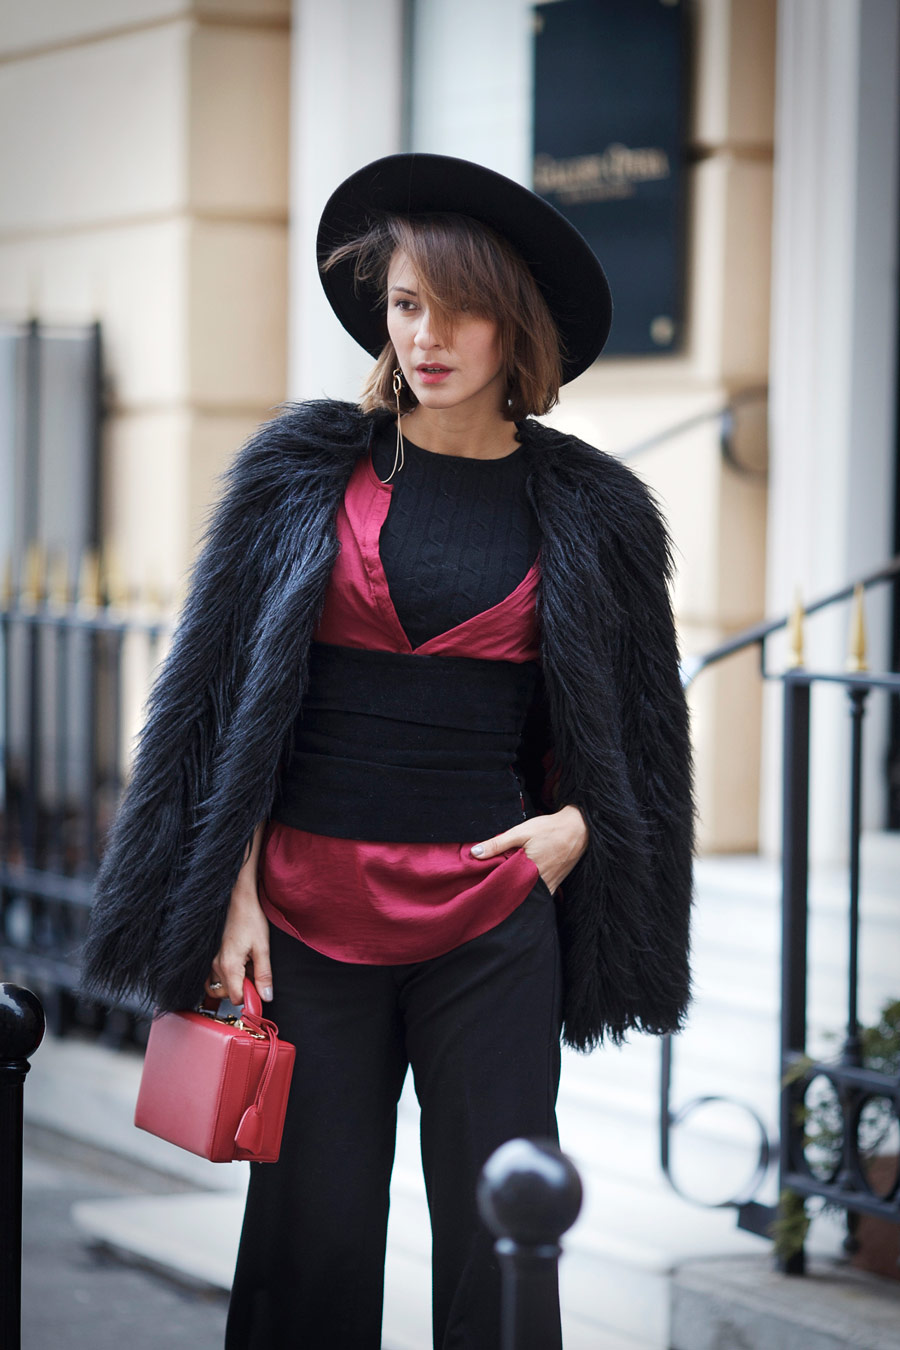 corset trend, street style corset outfit, faux fur coat, faux fur jacket, winter outfit ideas, Ellena Galant Girl,